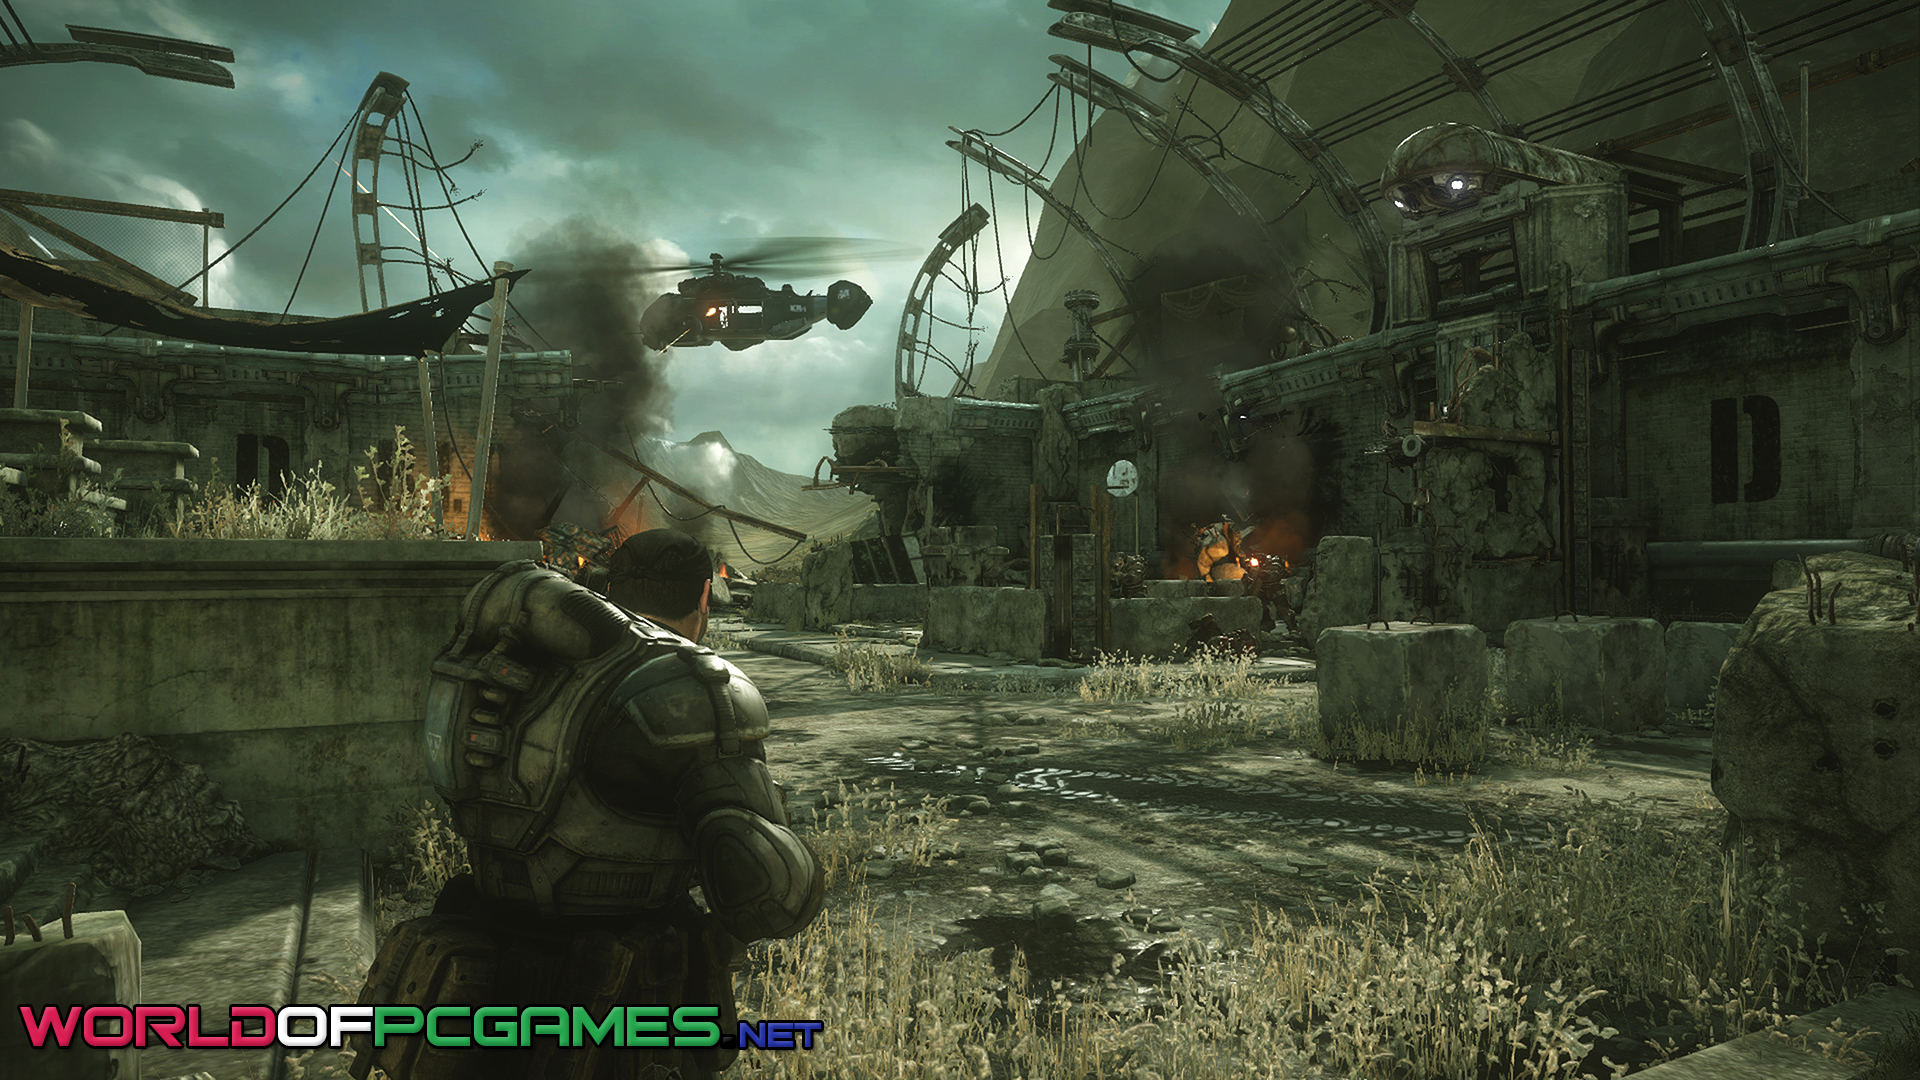 Gears Of War Free Download PC Game By Worldofpcgames.com